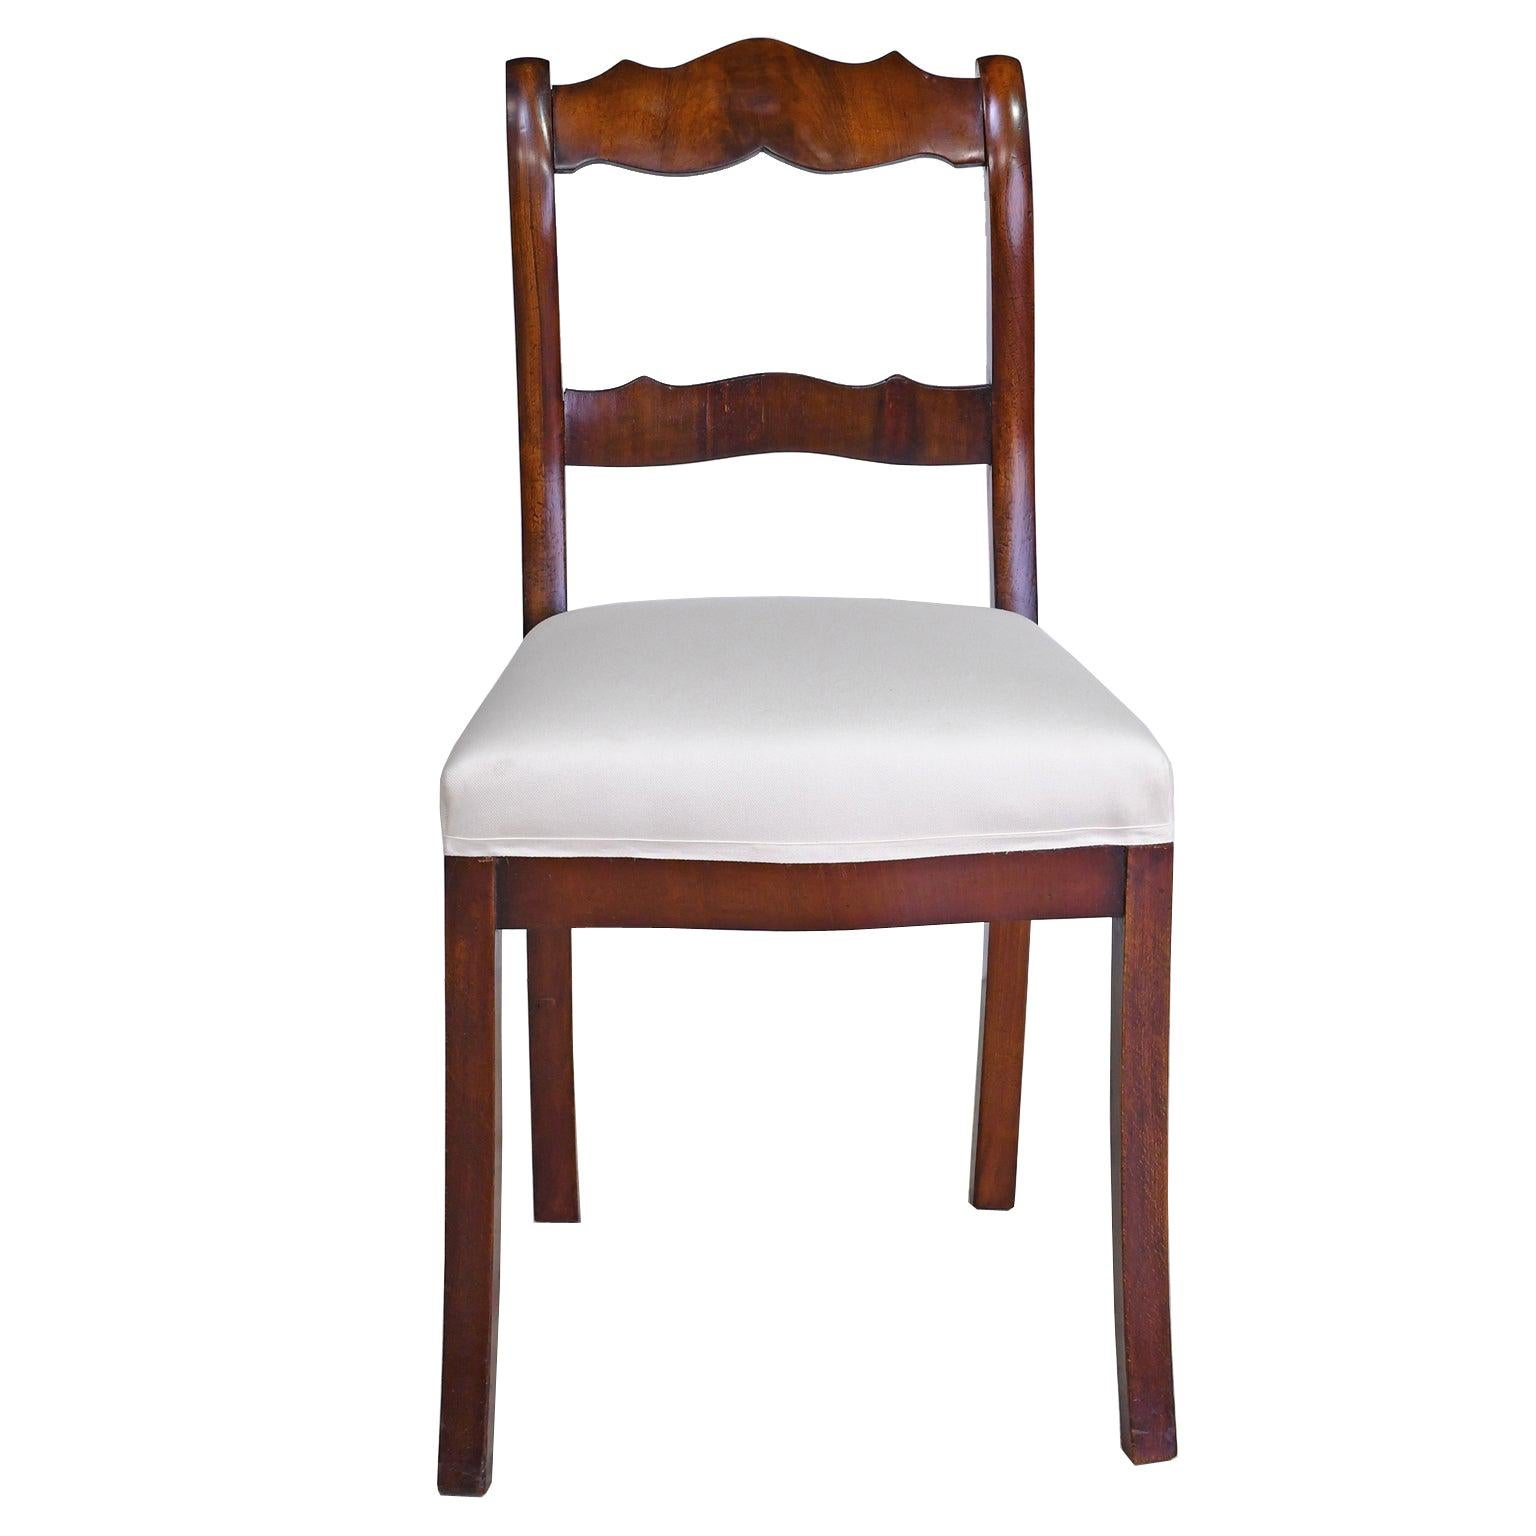 Set of Four Biedermeier Dining Chairs in Mahogany, Lower Saxony, Germany